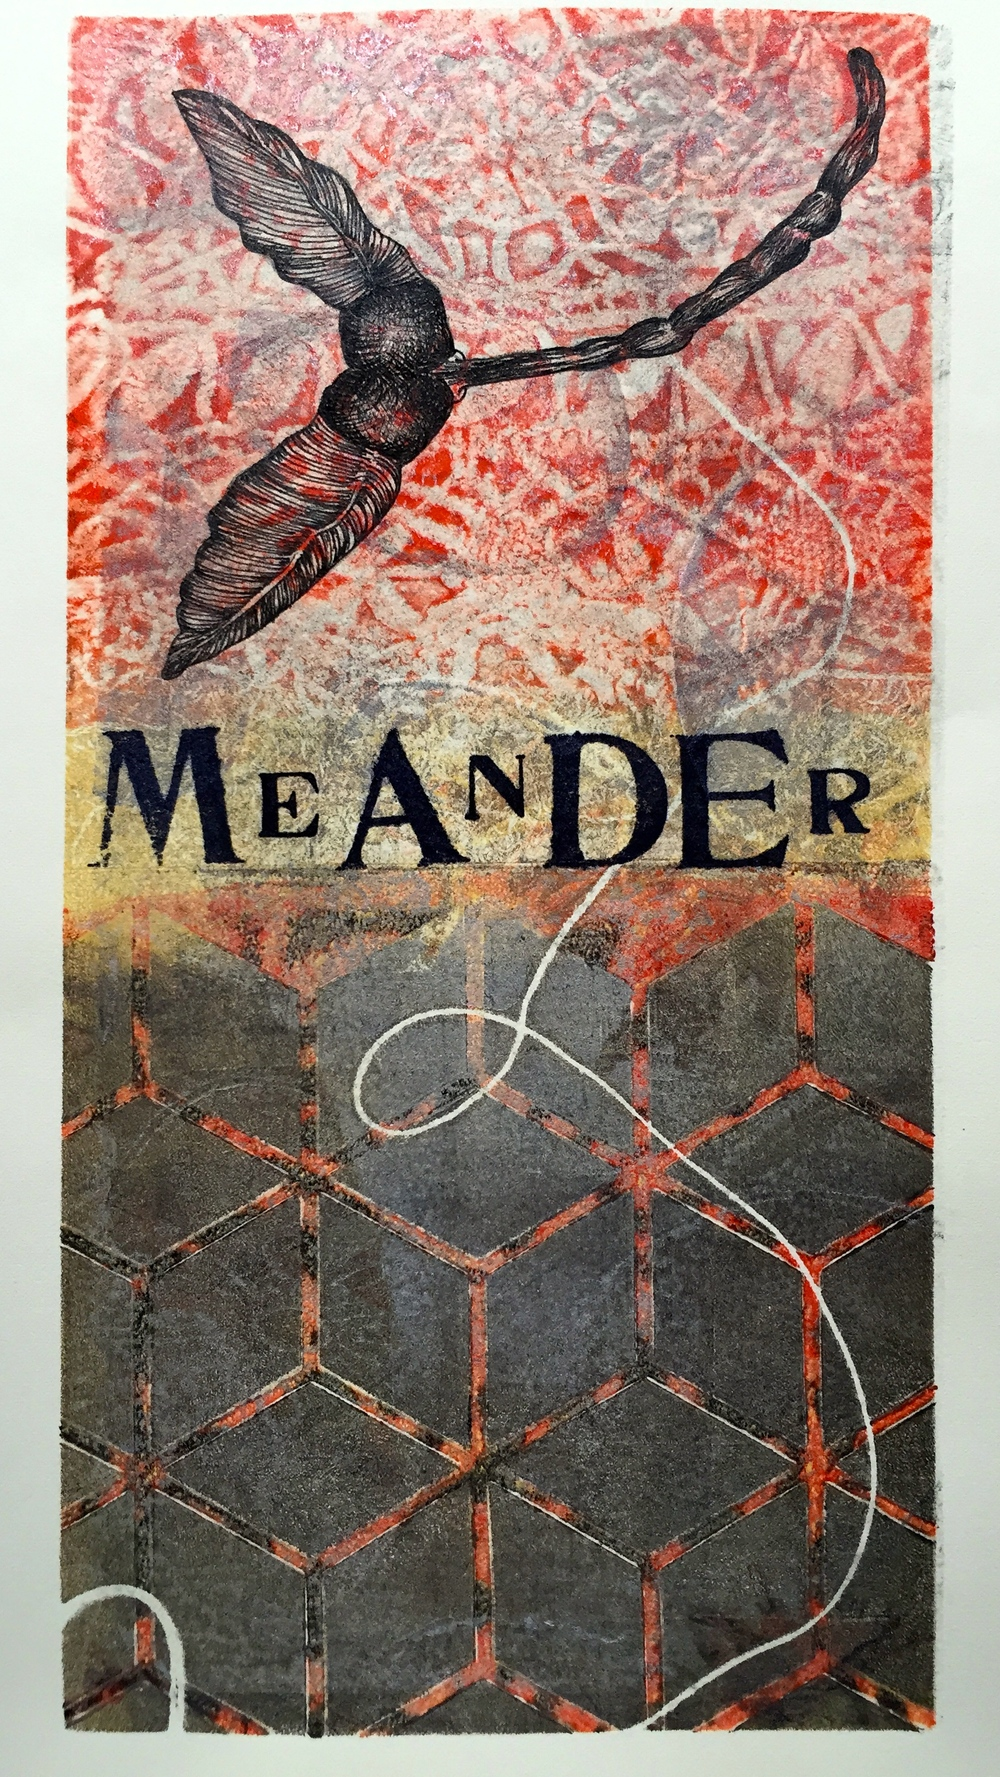 Meander   6 x 12 inches  mixed media  image: Susan Webster  stamped text: Stuart Kestenbaum  2015